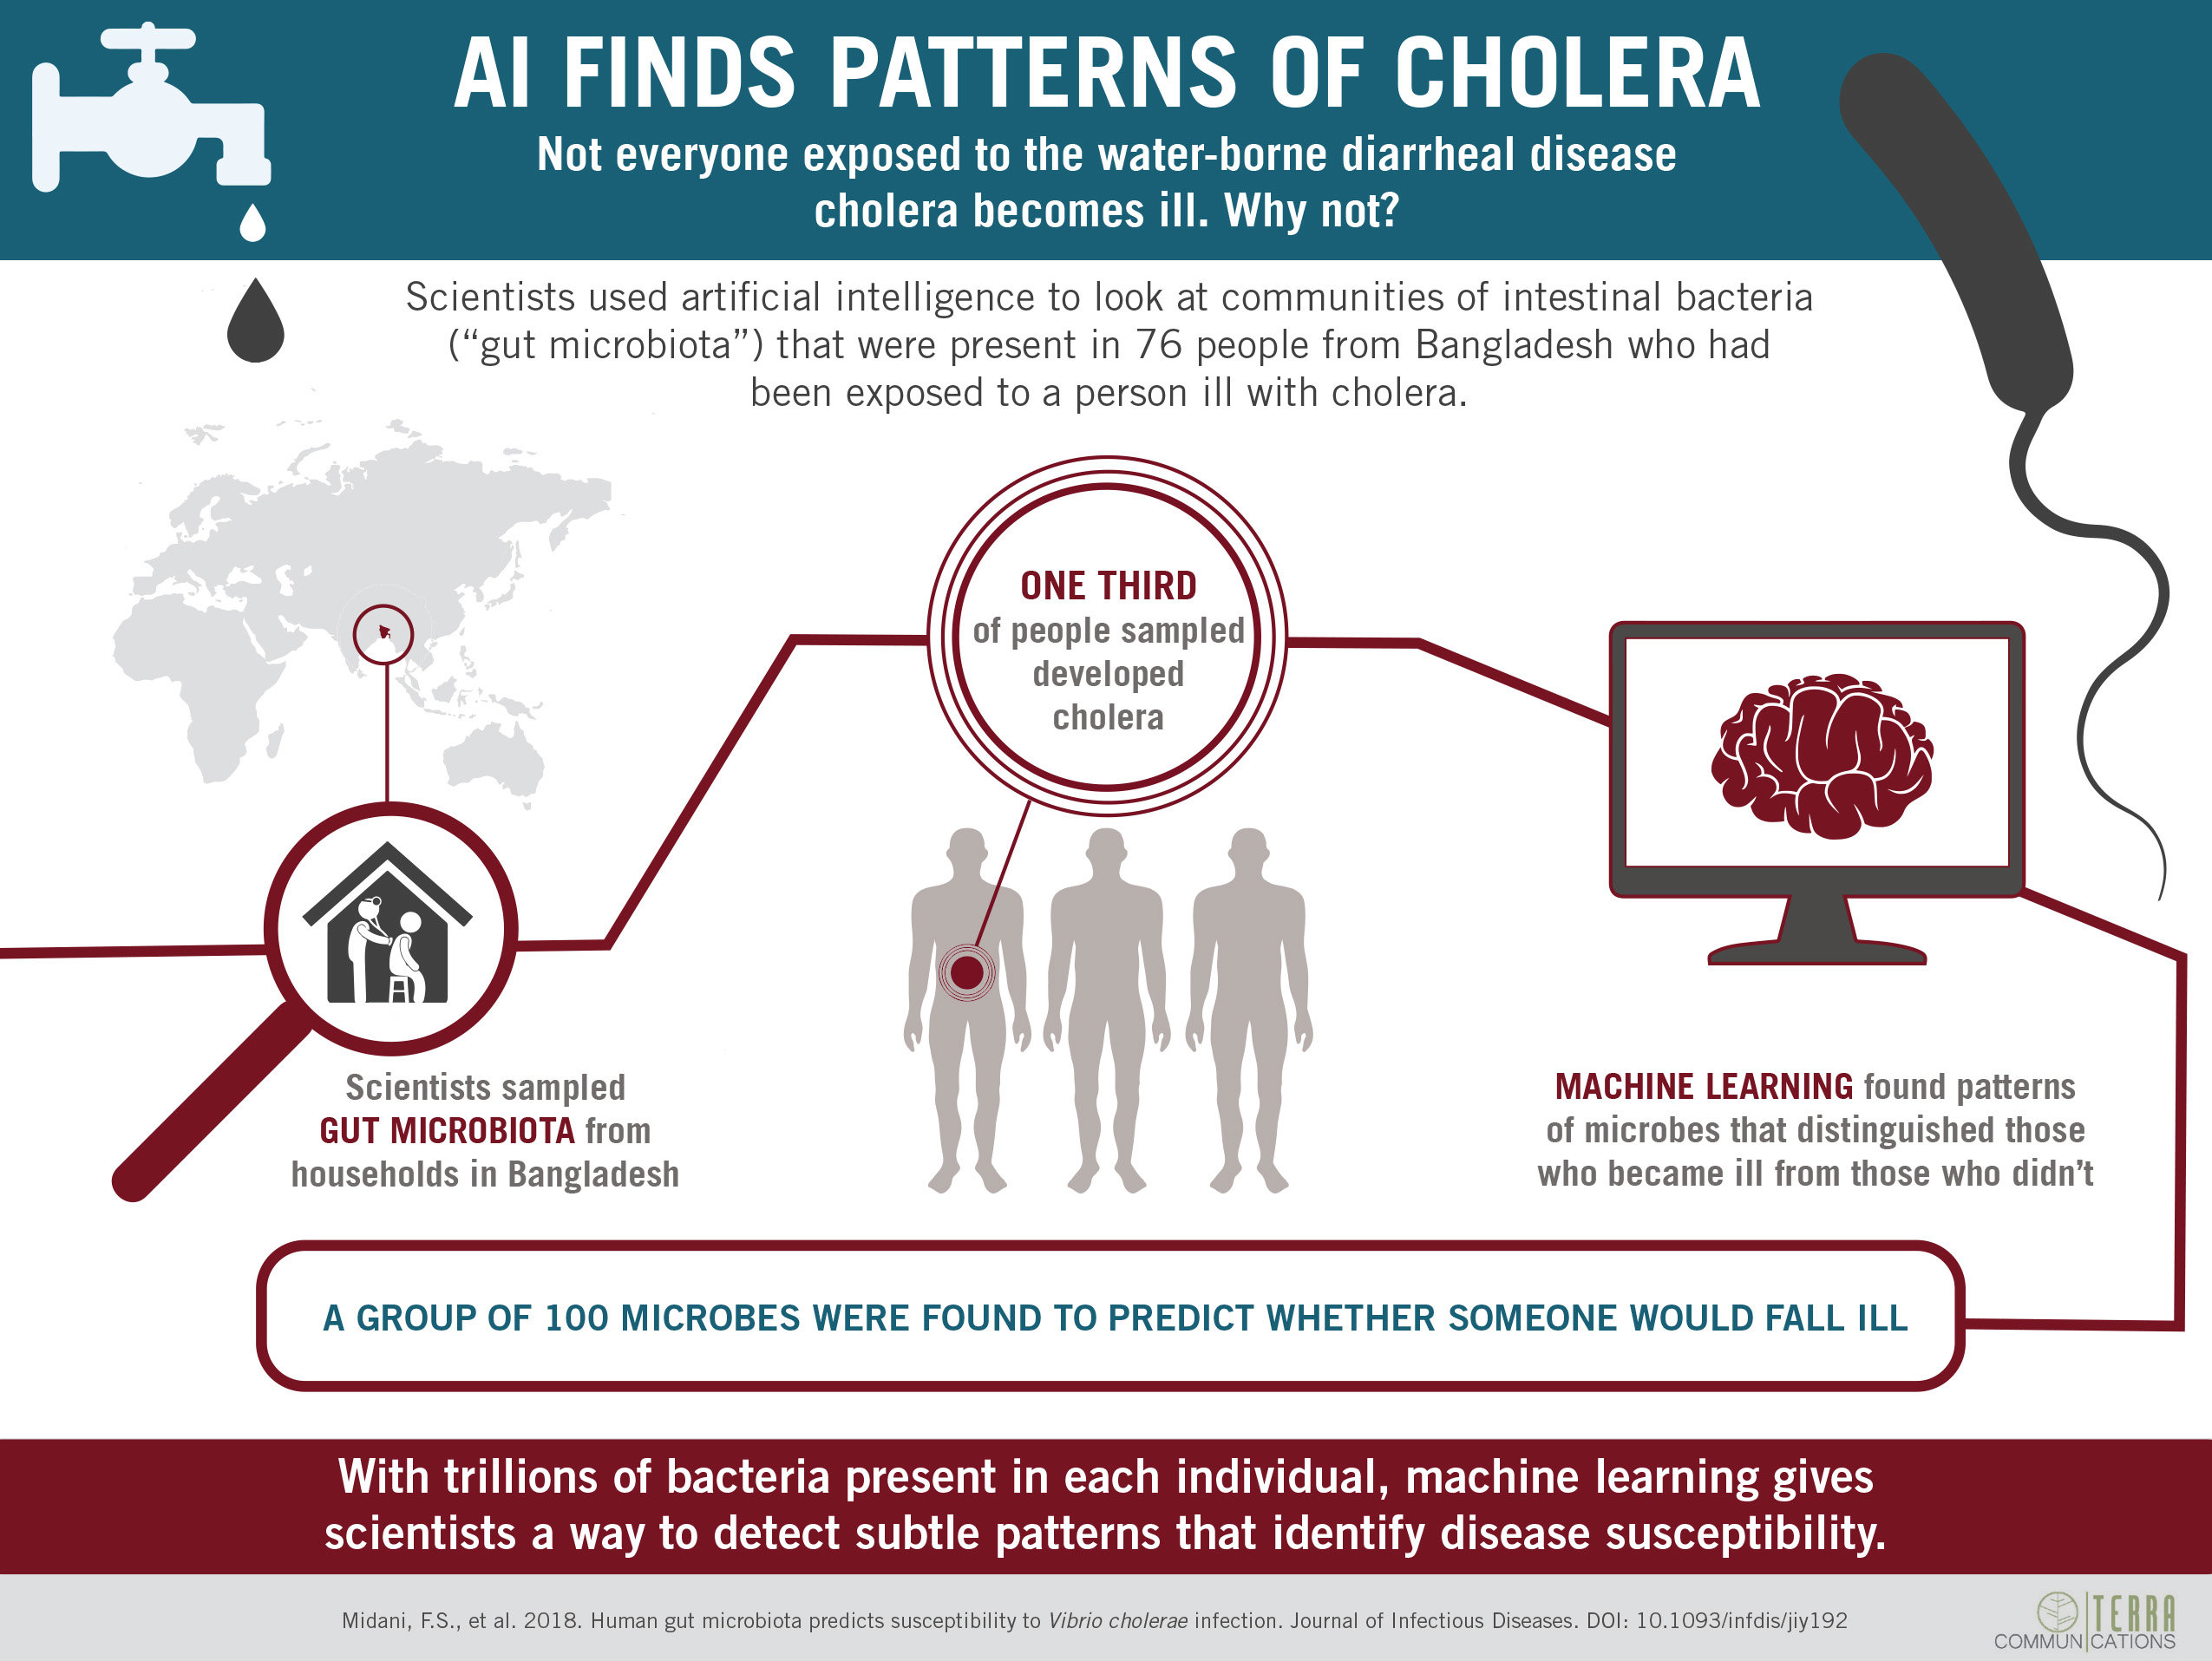 AI detects patterns of gut microbes for cholera risk